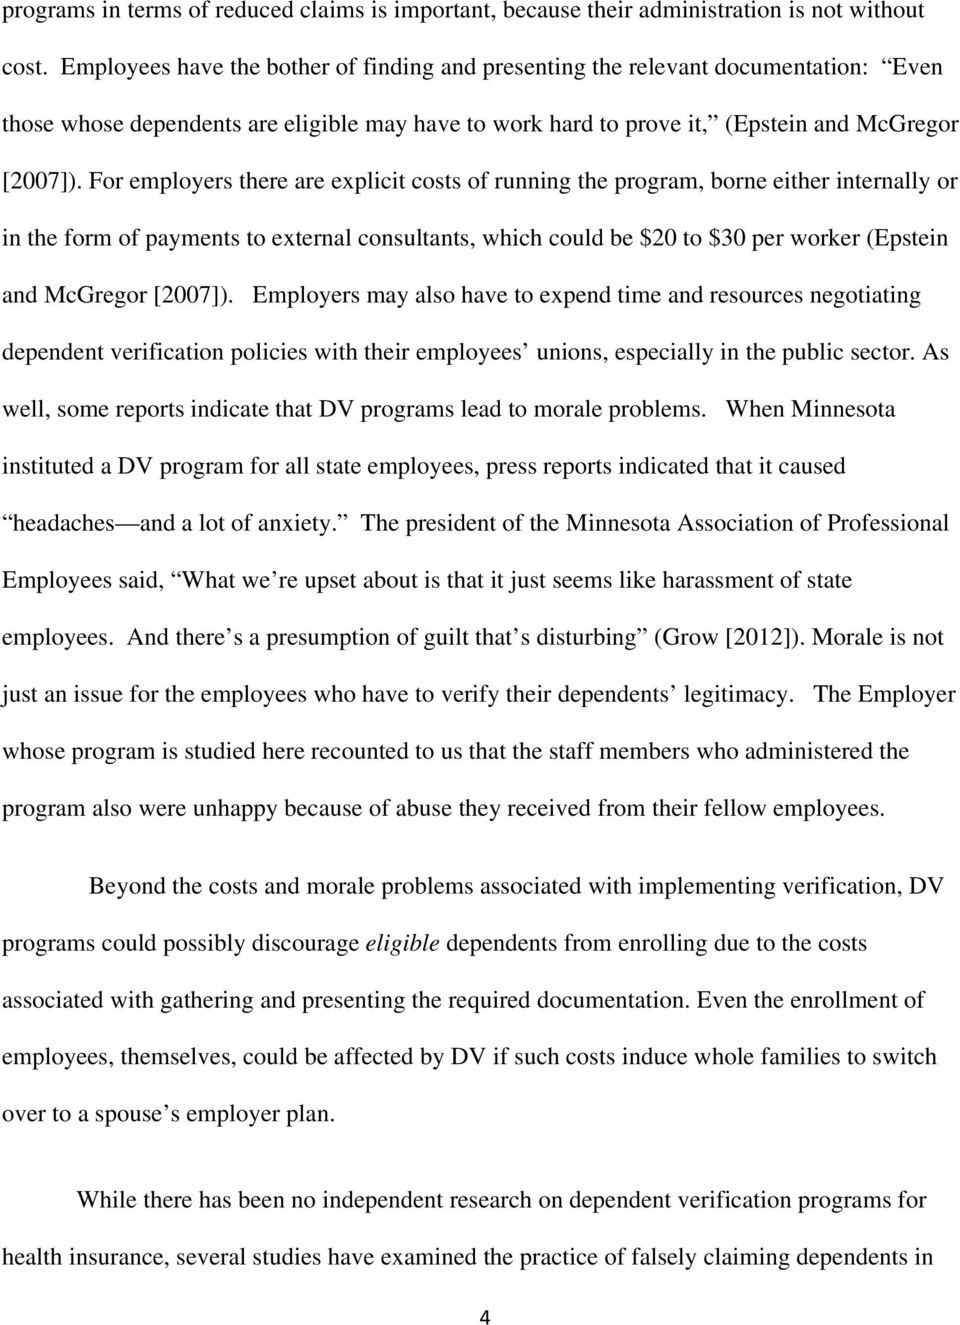 For employers there are explicit costs of running the program, borne either internally or in the form of payments to external consultants, which could be $20 to $30 per worker (Epstein and McGregor